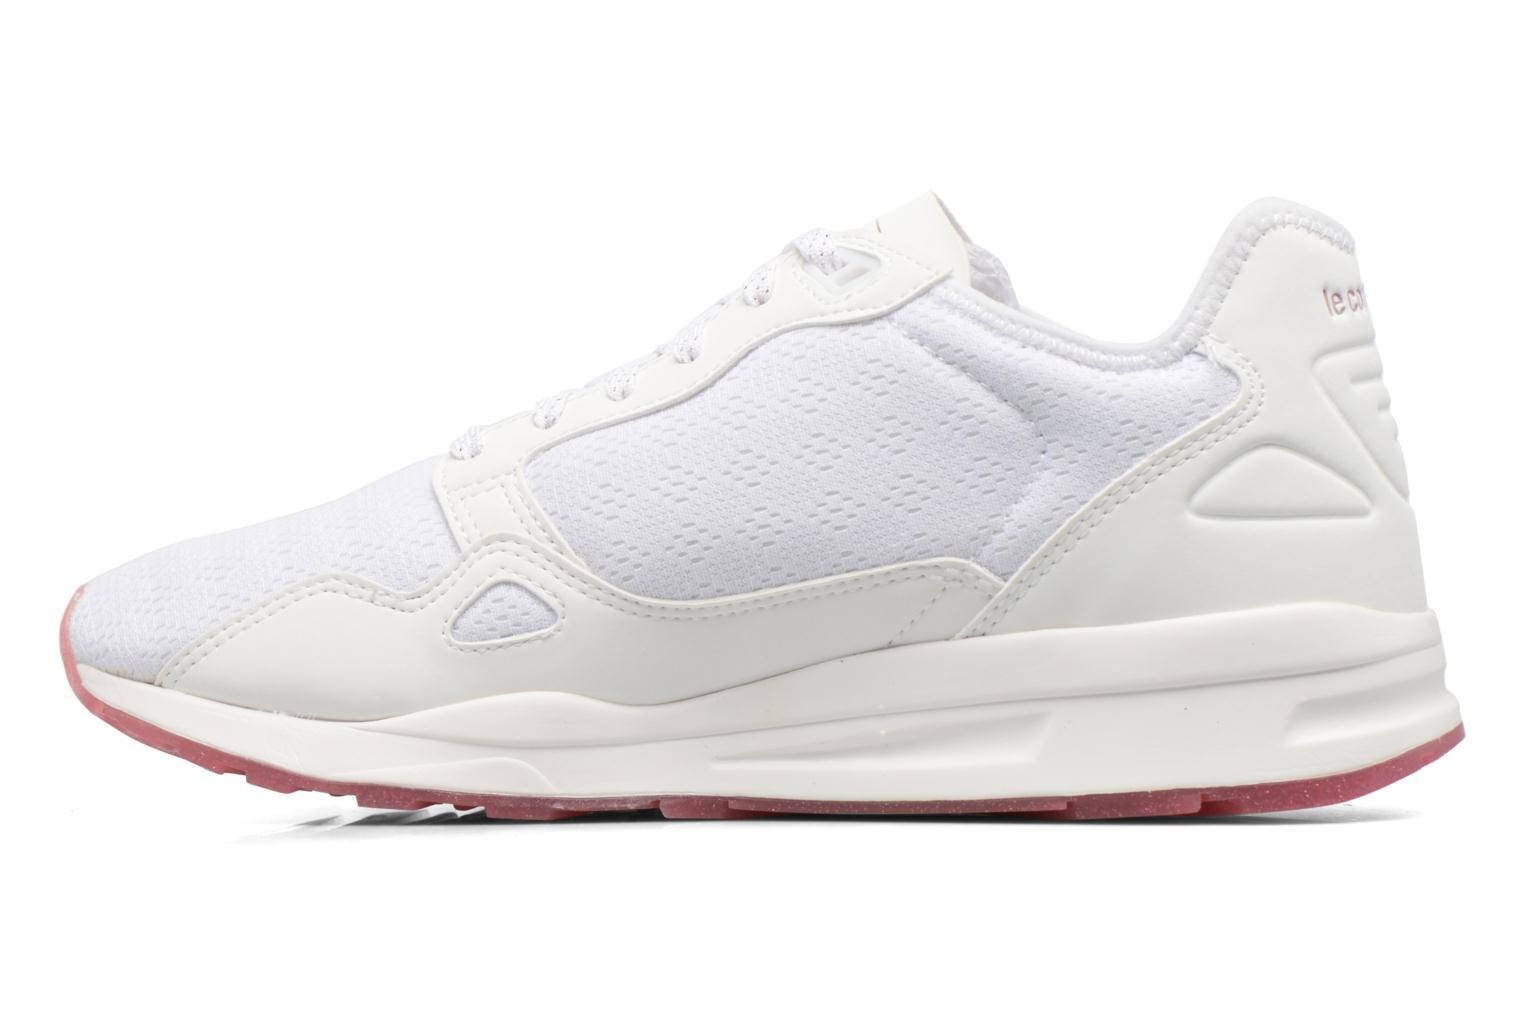 LCS R9XT Optical White/Metallic Pink